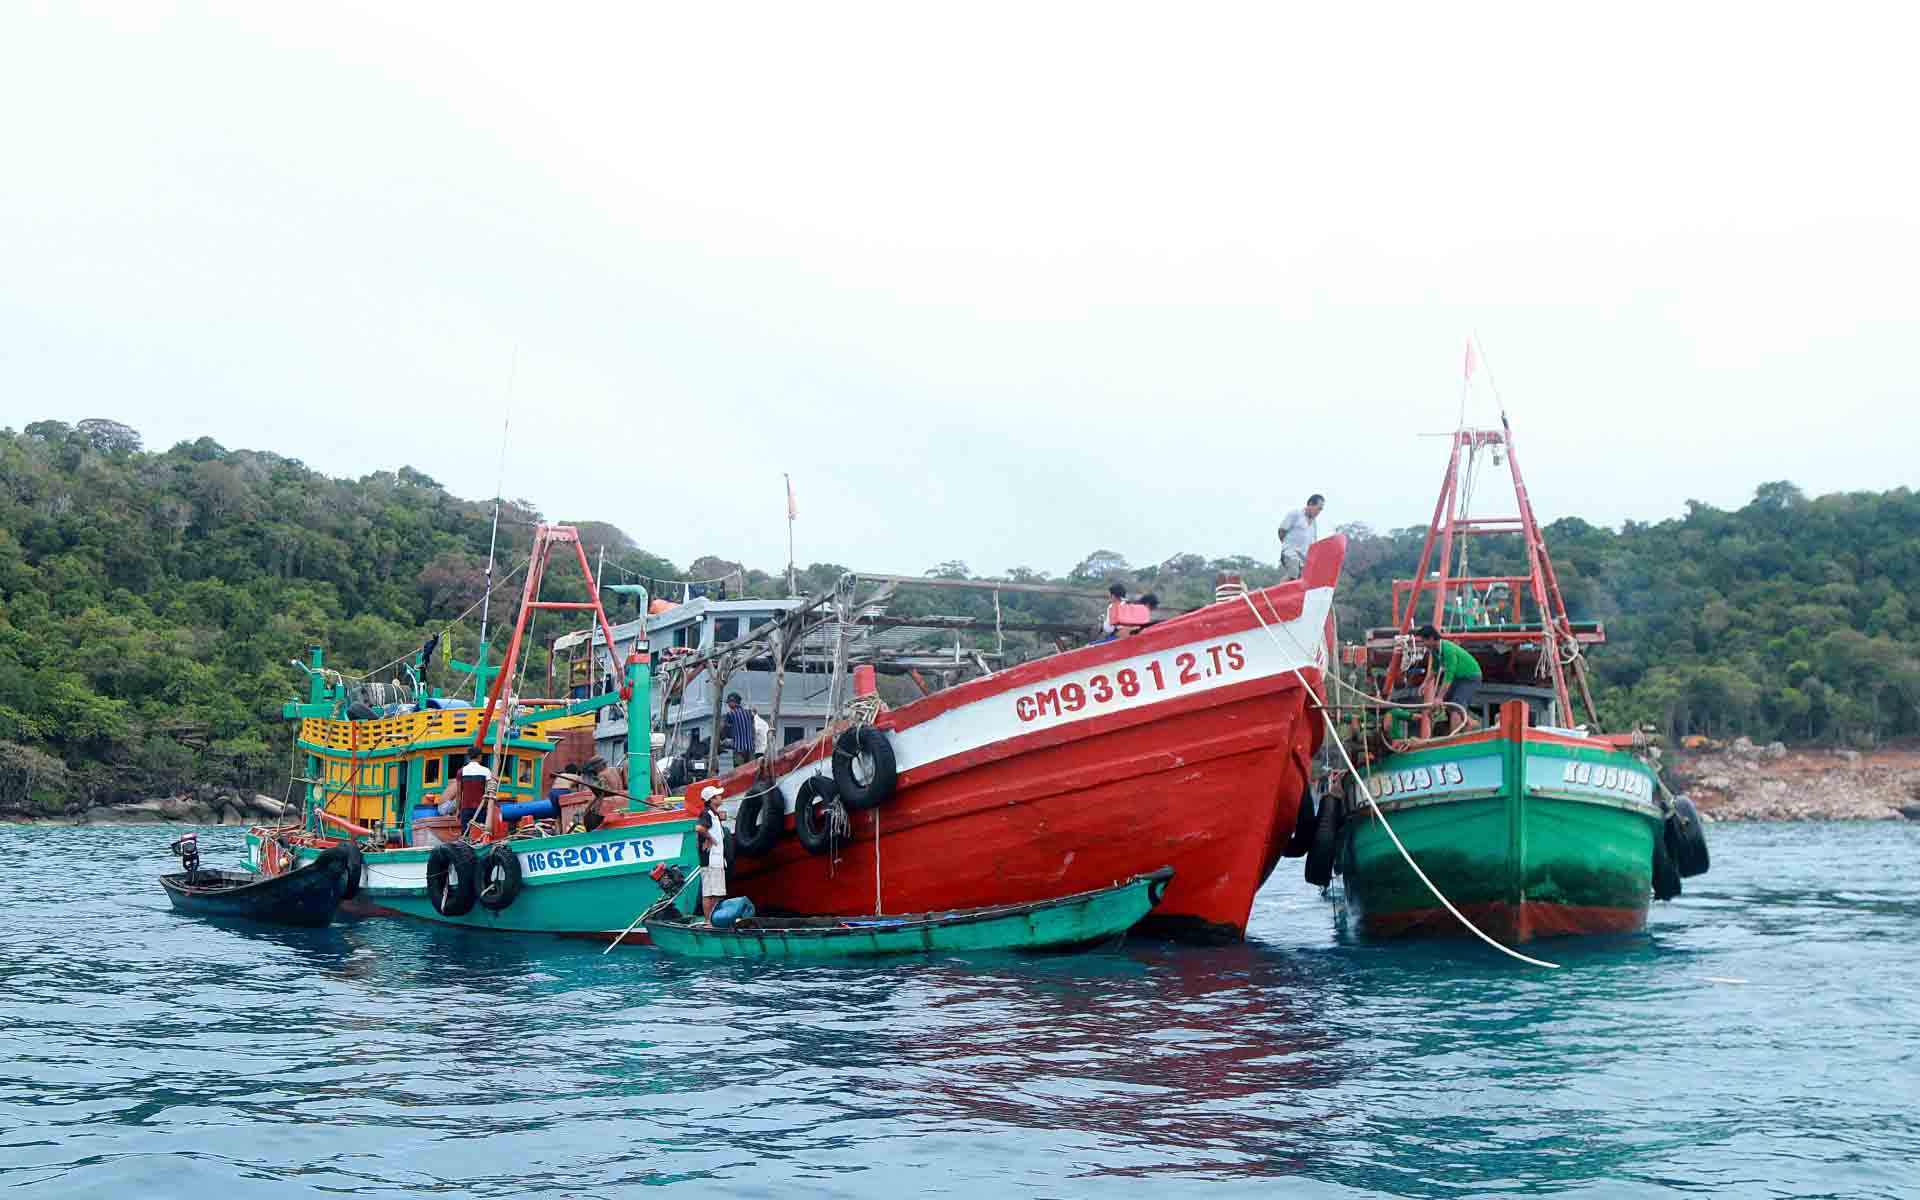 Fishing boats trade sea catch near Tho Chau Islands off Kien Giang Province, Vietnam.